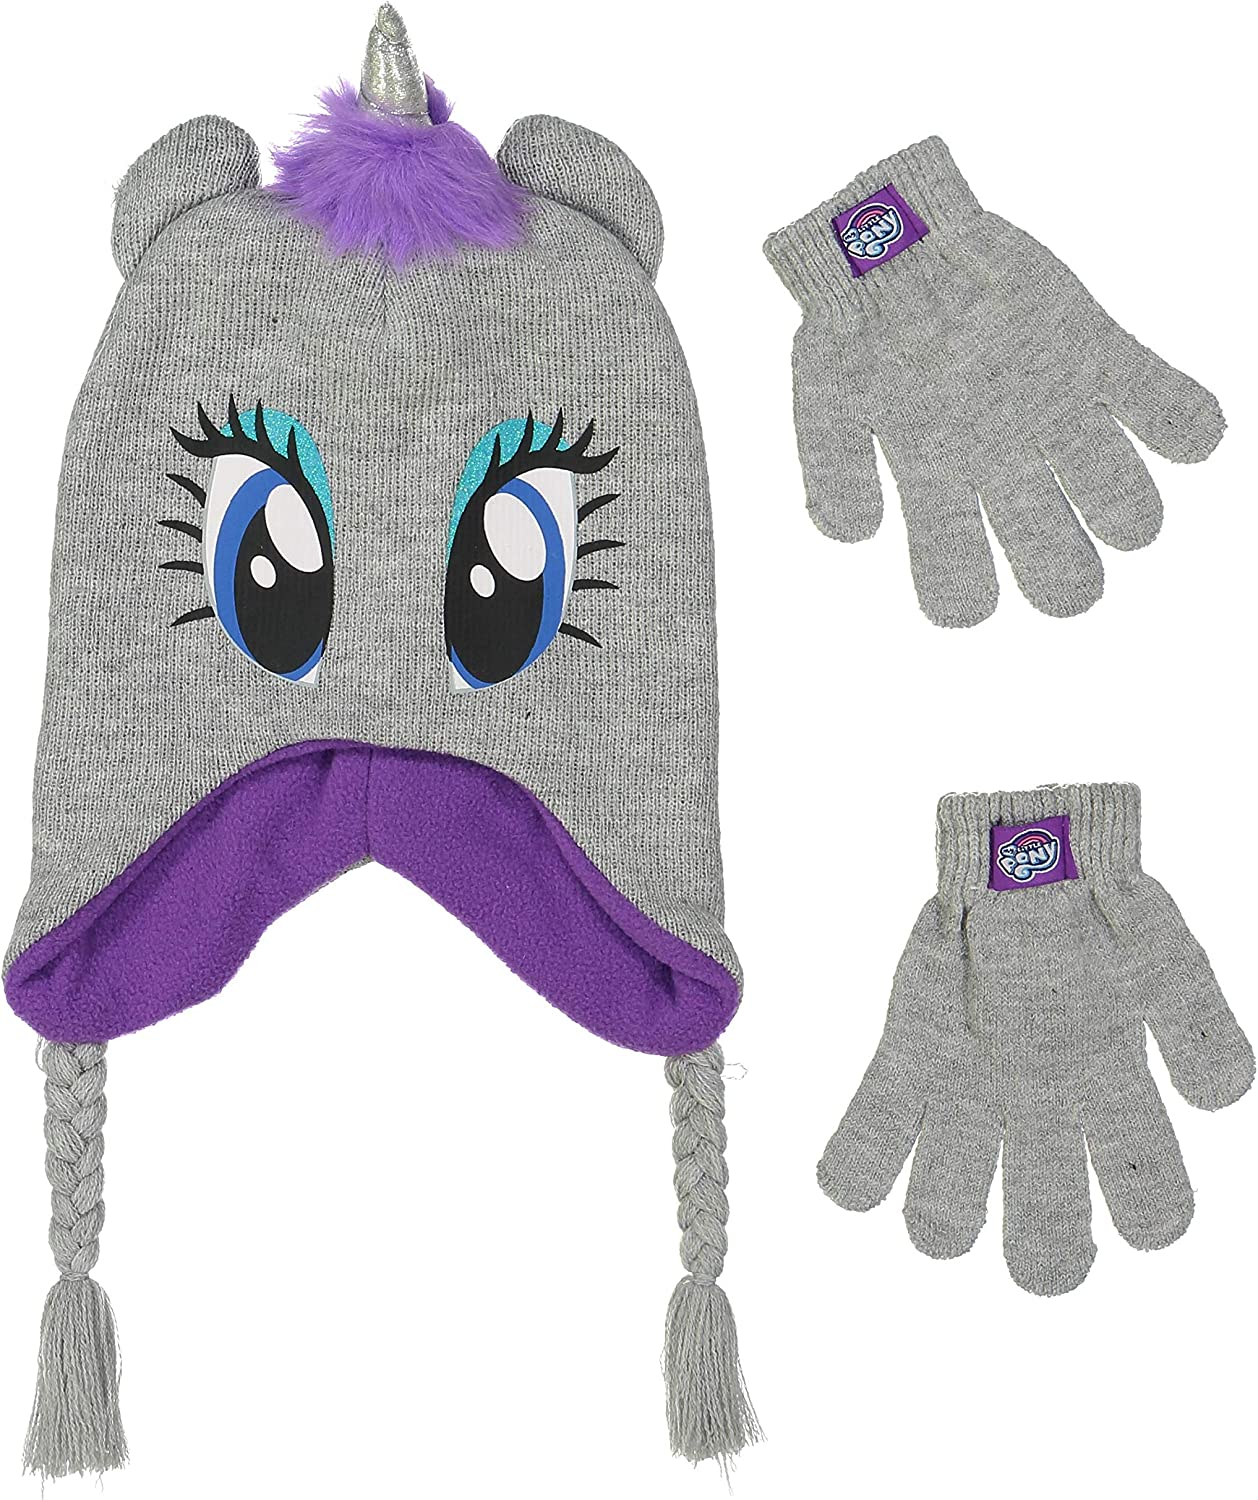 4015 Girls Knitted Animal Beanie Winter Hat and Glove Set